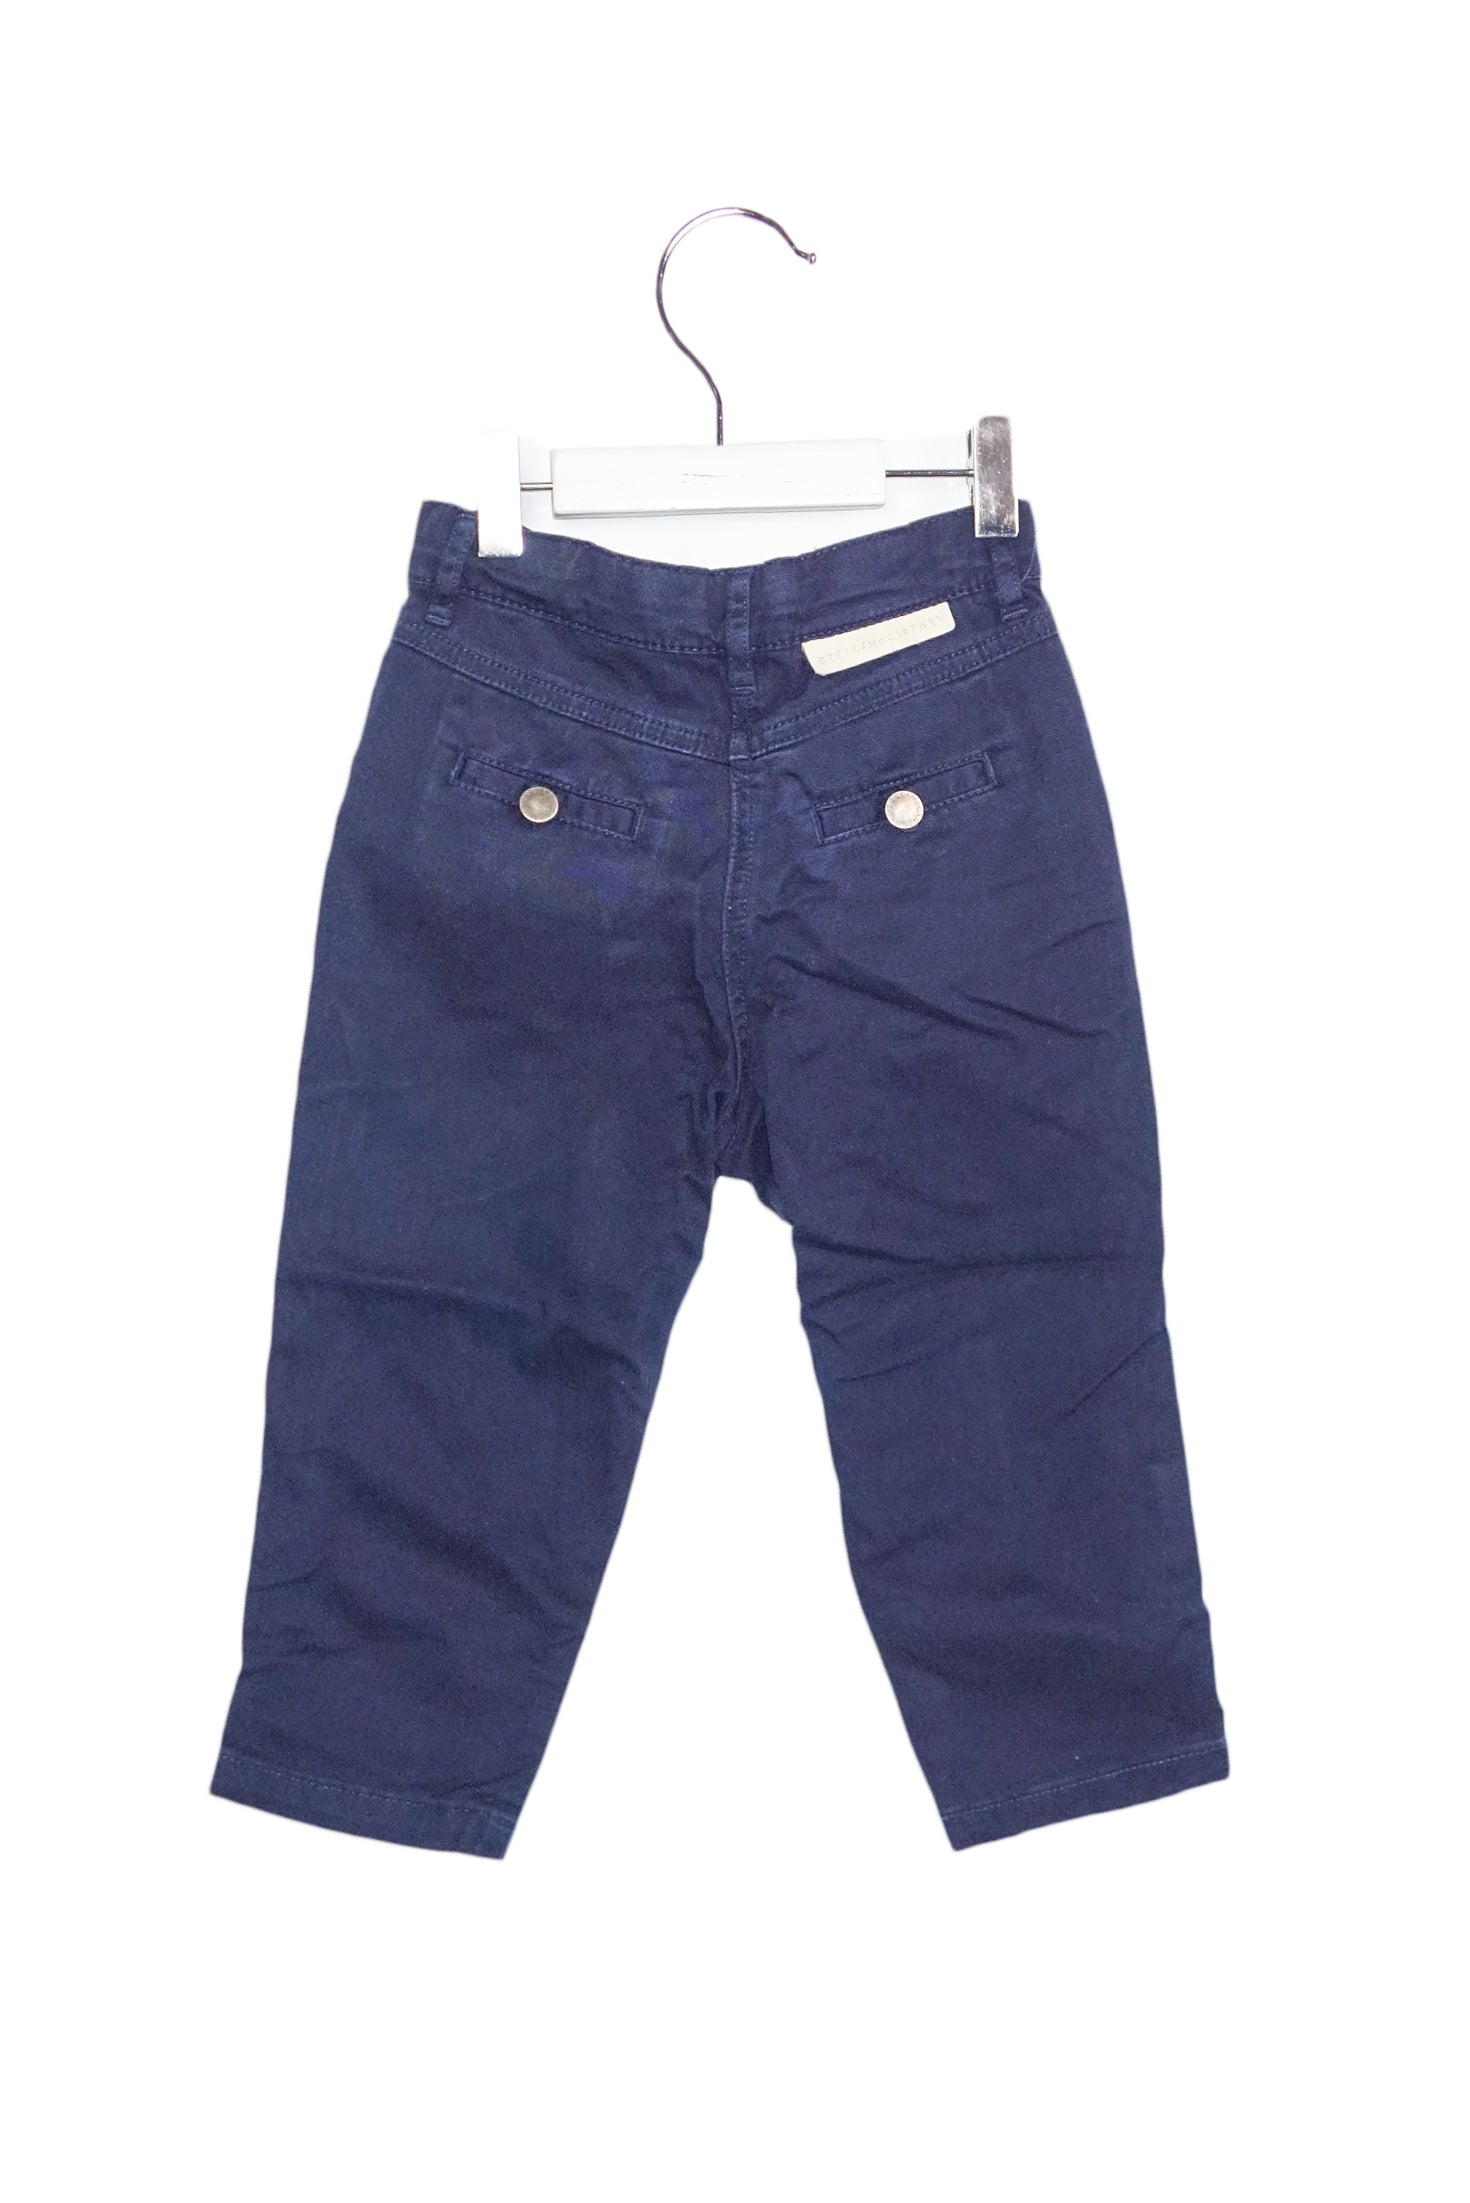 10014295 Stella McCartney Kids ~ Pants 3T at Retykle